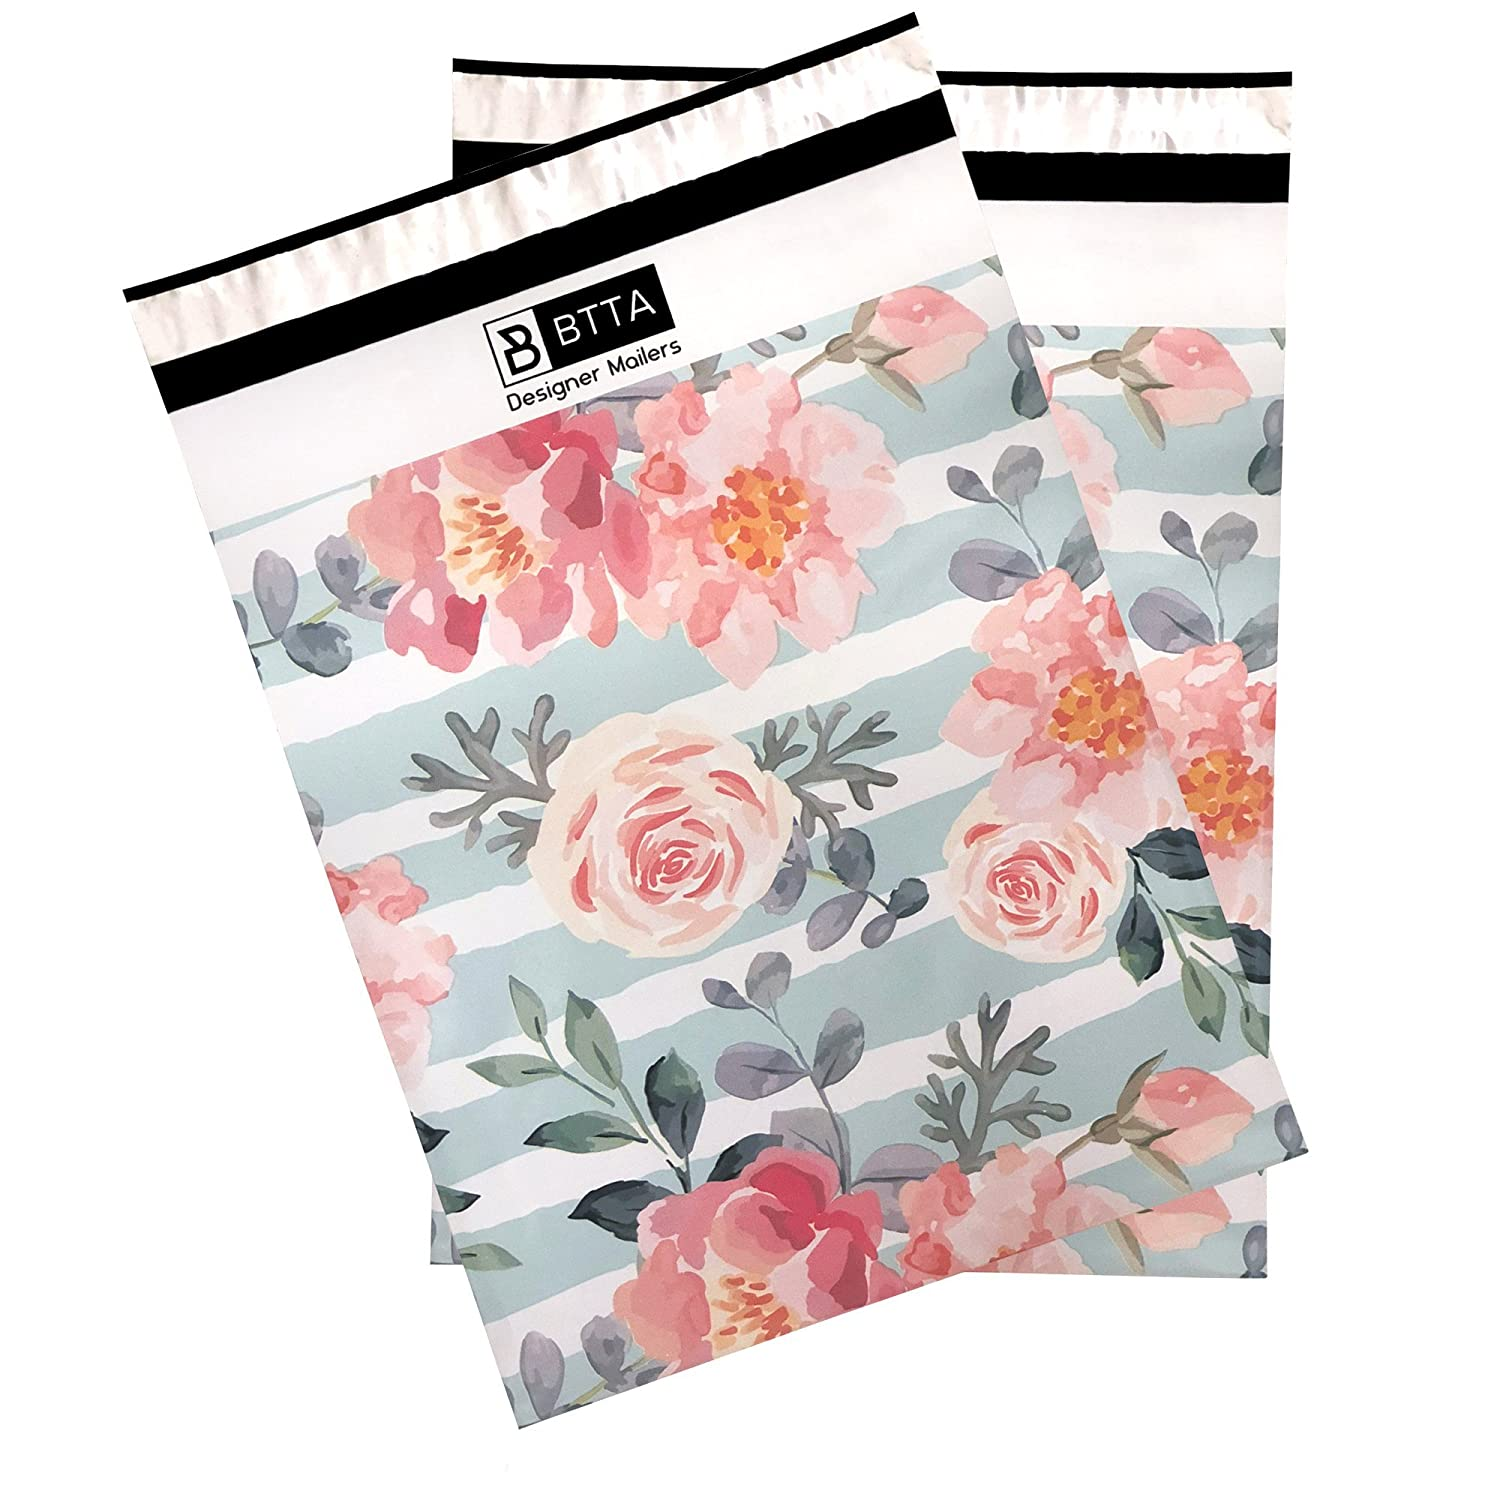 100 Pack 10x13 Pink Stripes and Flowers Poly Mailers Shipping Envelopes Bags with Custom Designer Printed Boutique Pattern and Self Seal Adhesive Strip Large Heavy Duty Waterproof Bulk Combo